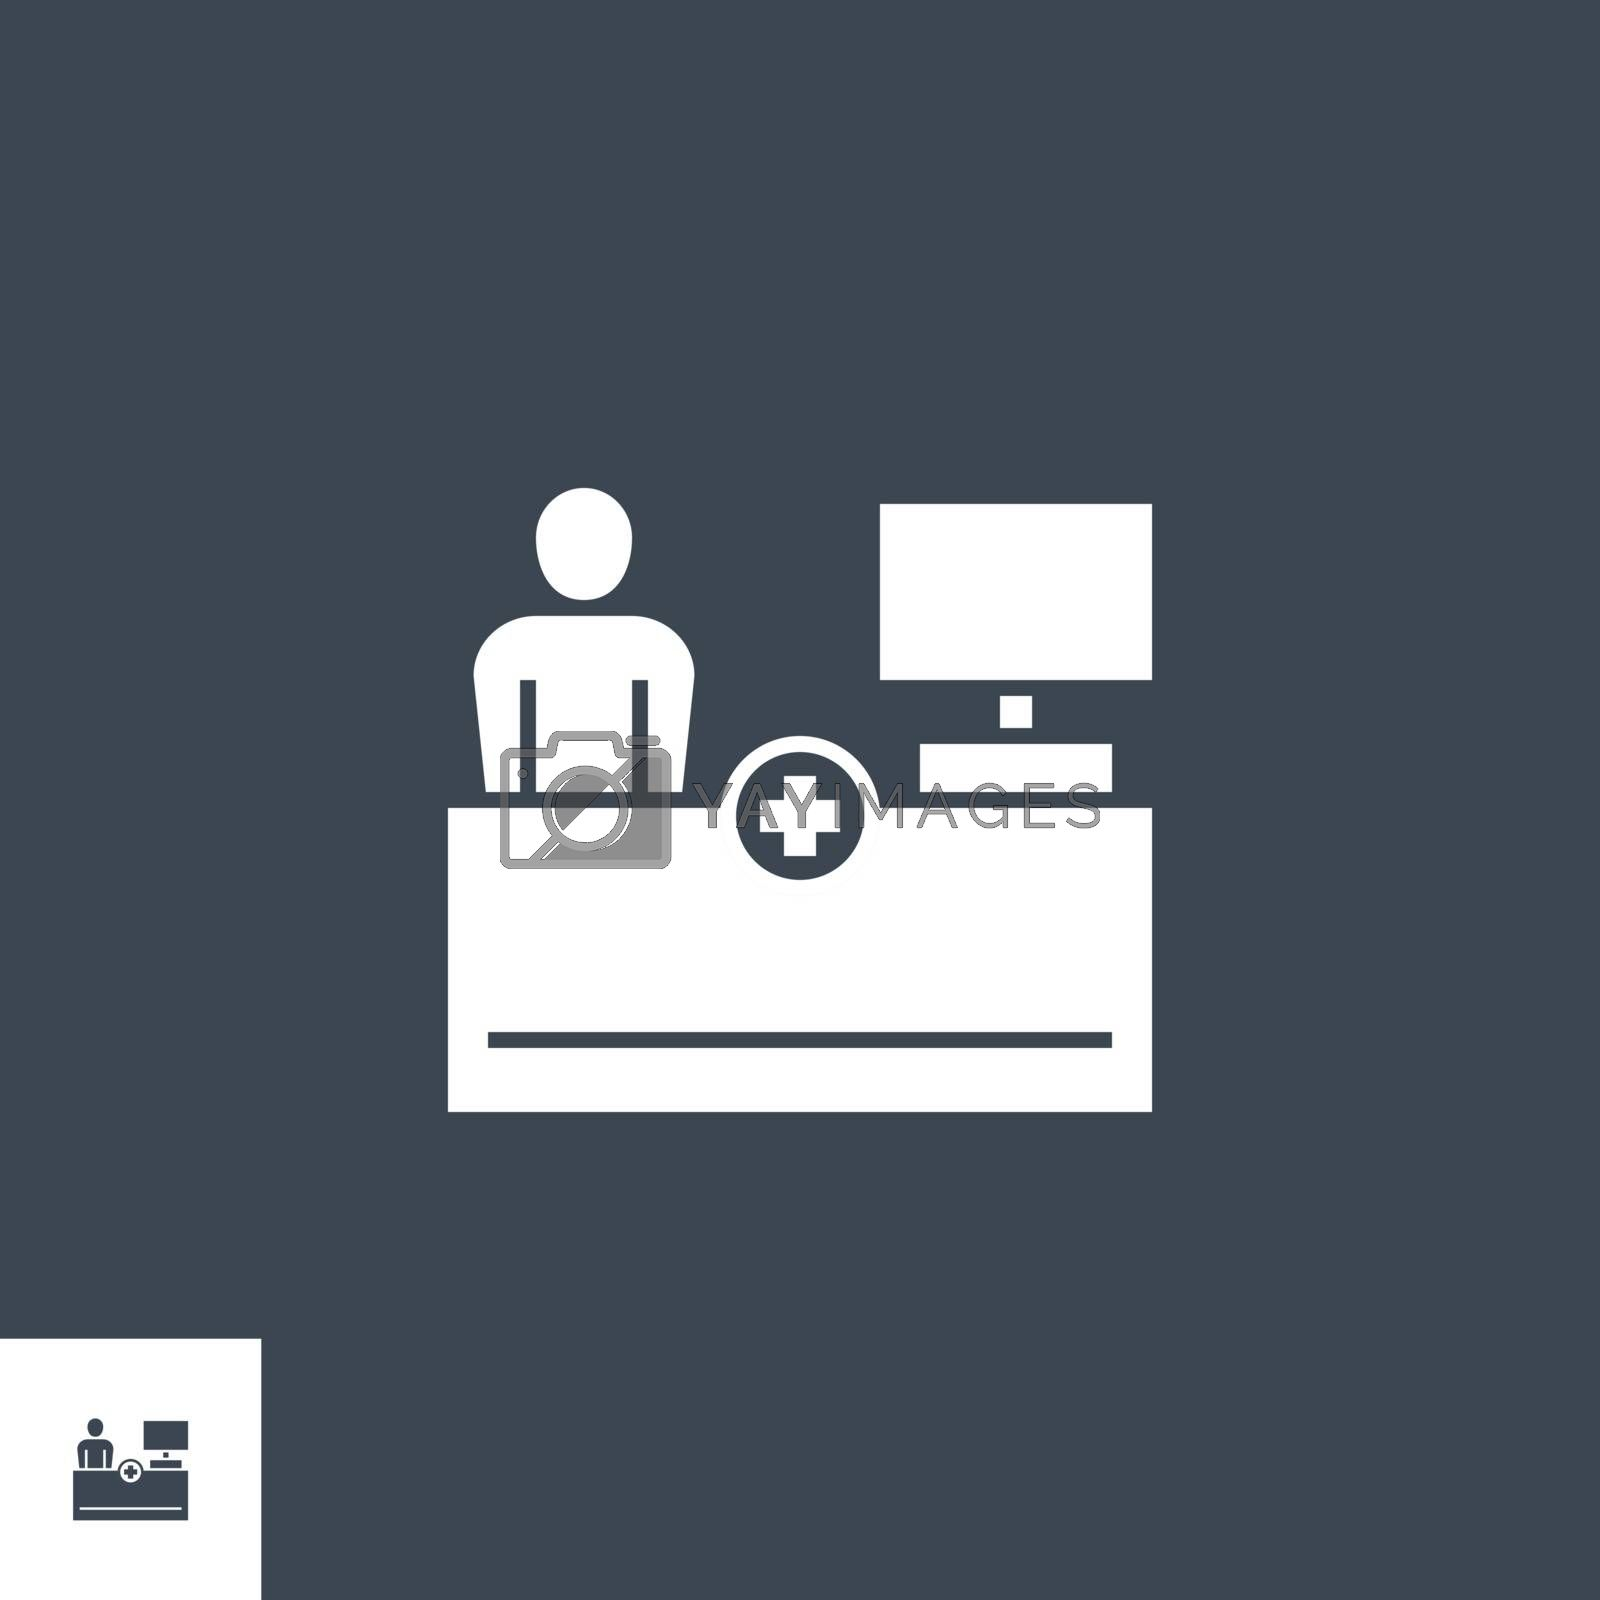 Reception related vector glyph icon. Isolated on black background. Vector illustration.